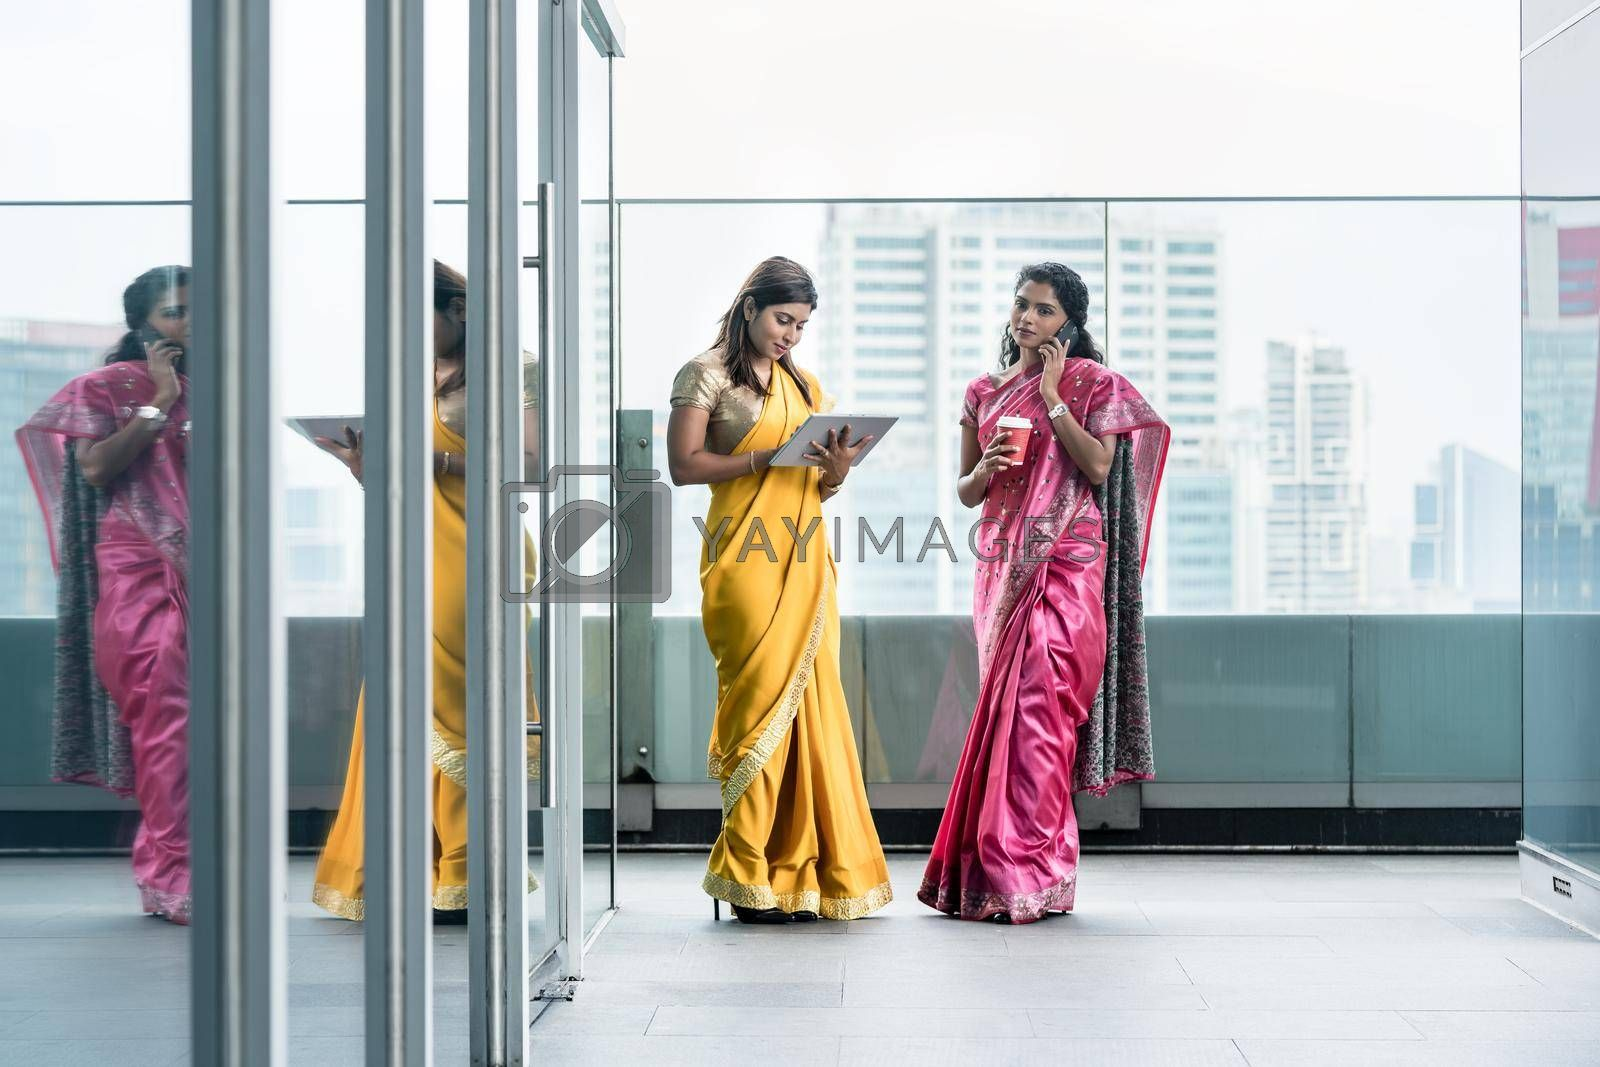 Two young Indian women using modern technology for communication during the break at work in a business building